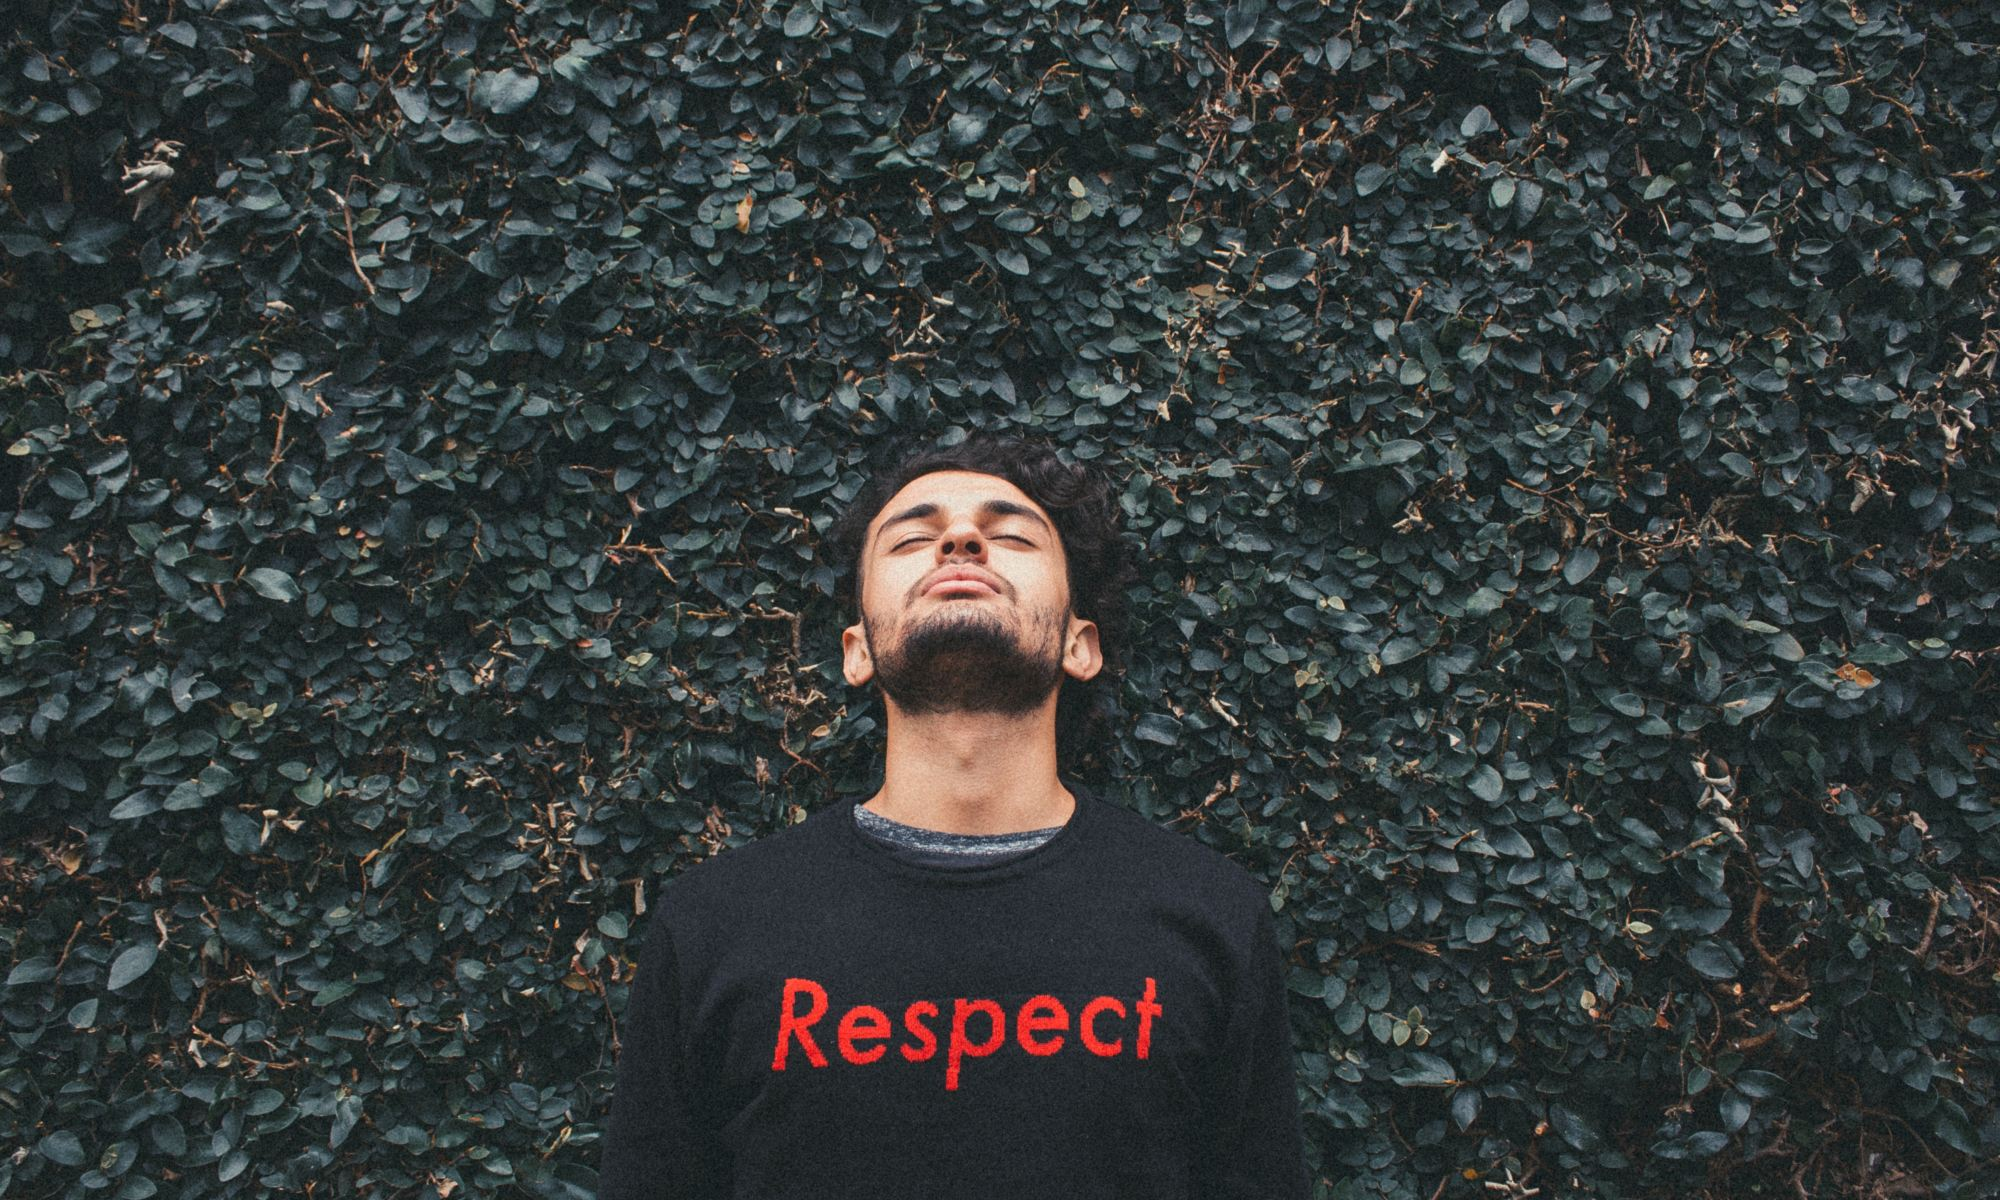 """Man standing behind green leafed plants wearing a black shirt that says """"respect"""""""